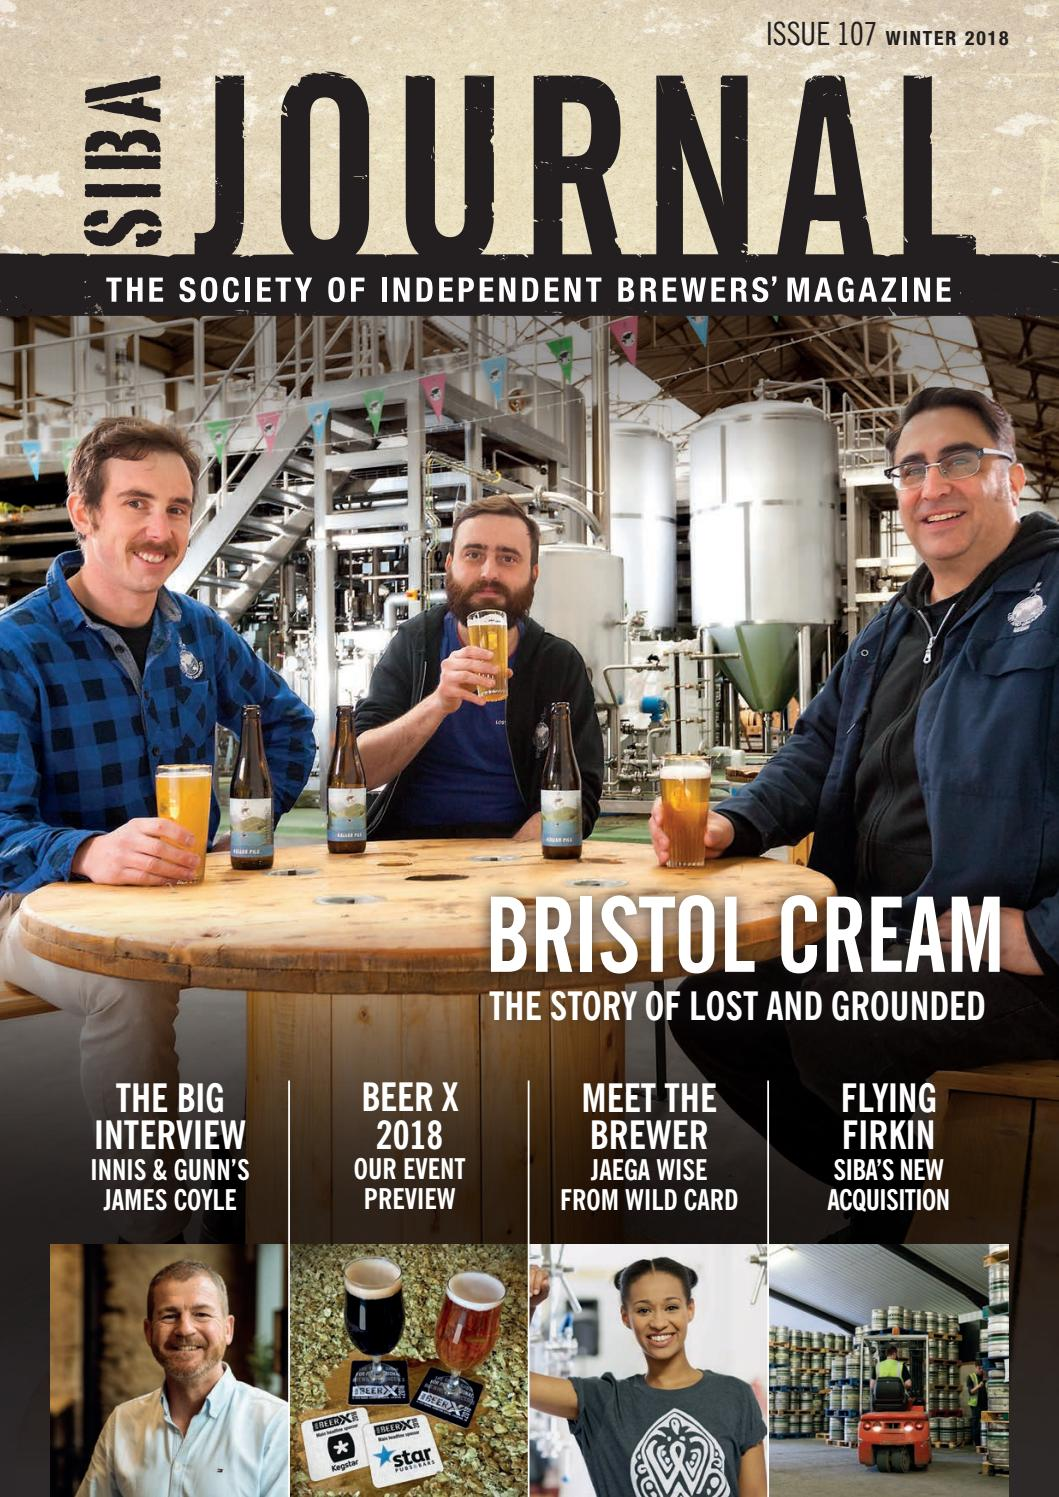 Siba journal winter 2018 by SIBA, the Society of Independent Brewers